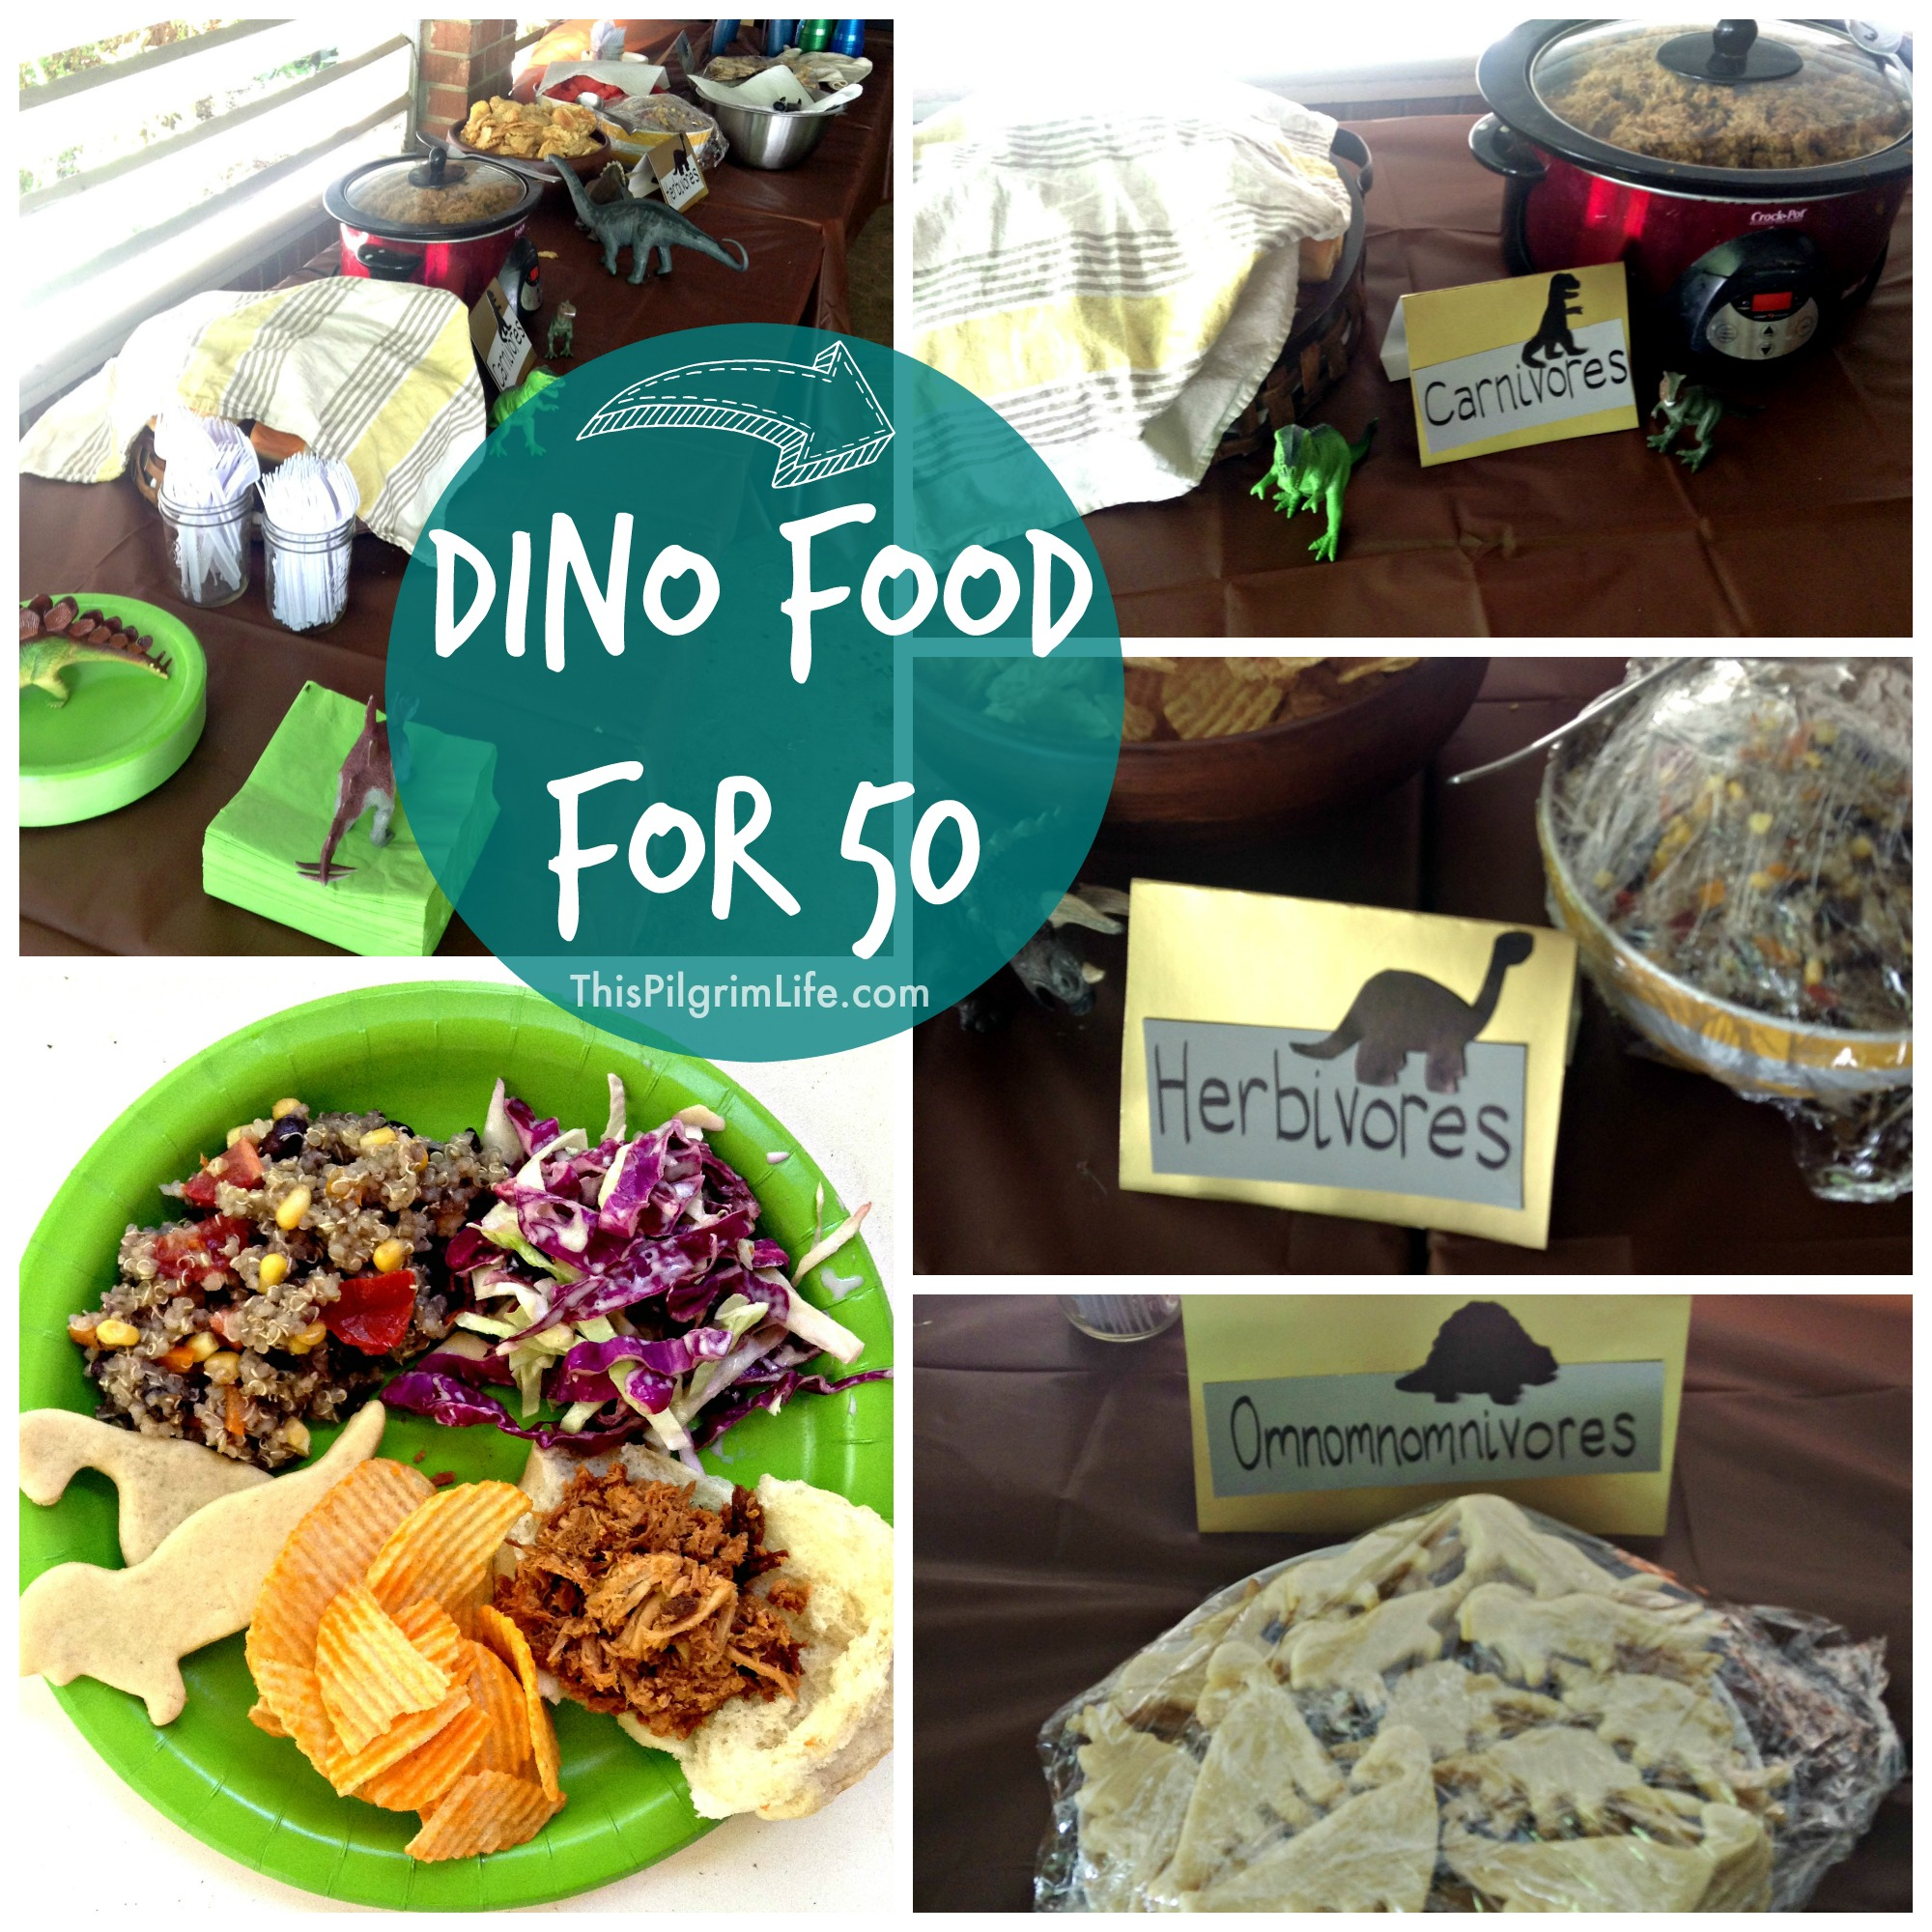 Feeding fifty friends at a birthday party was healthy and frugal with this delicious menu!